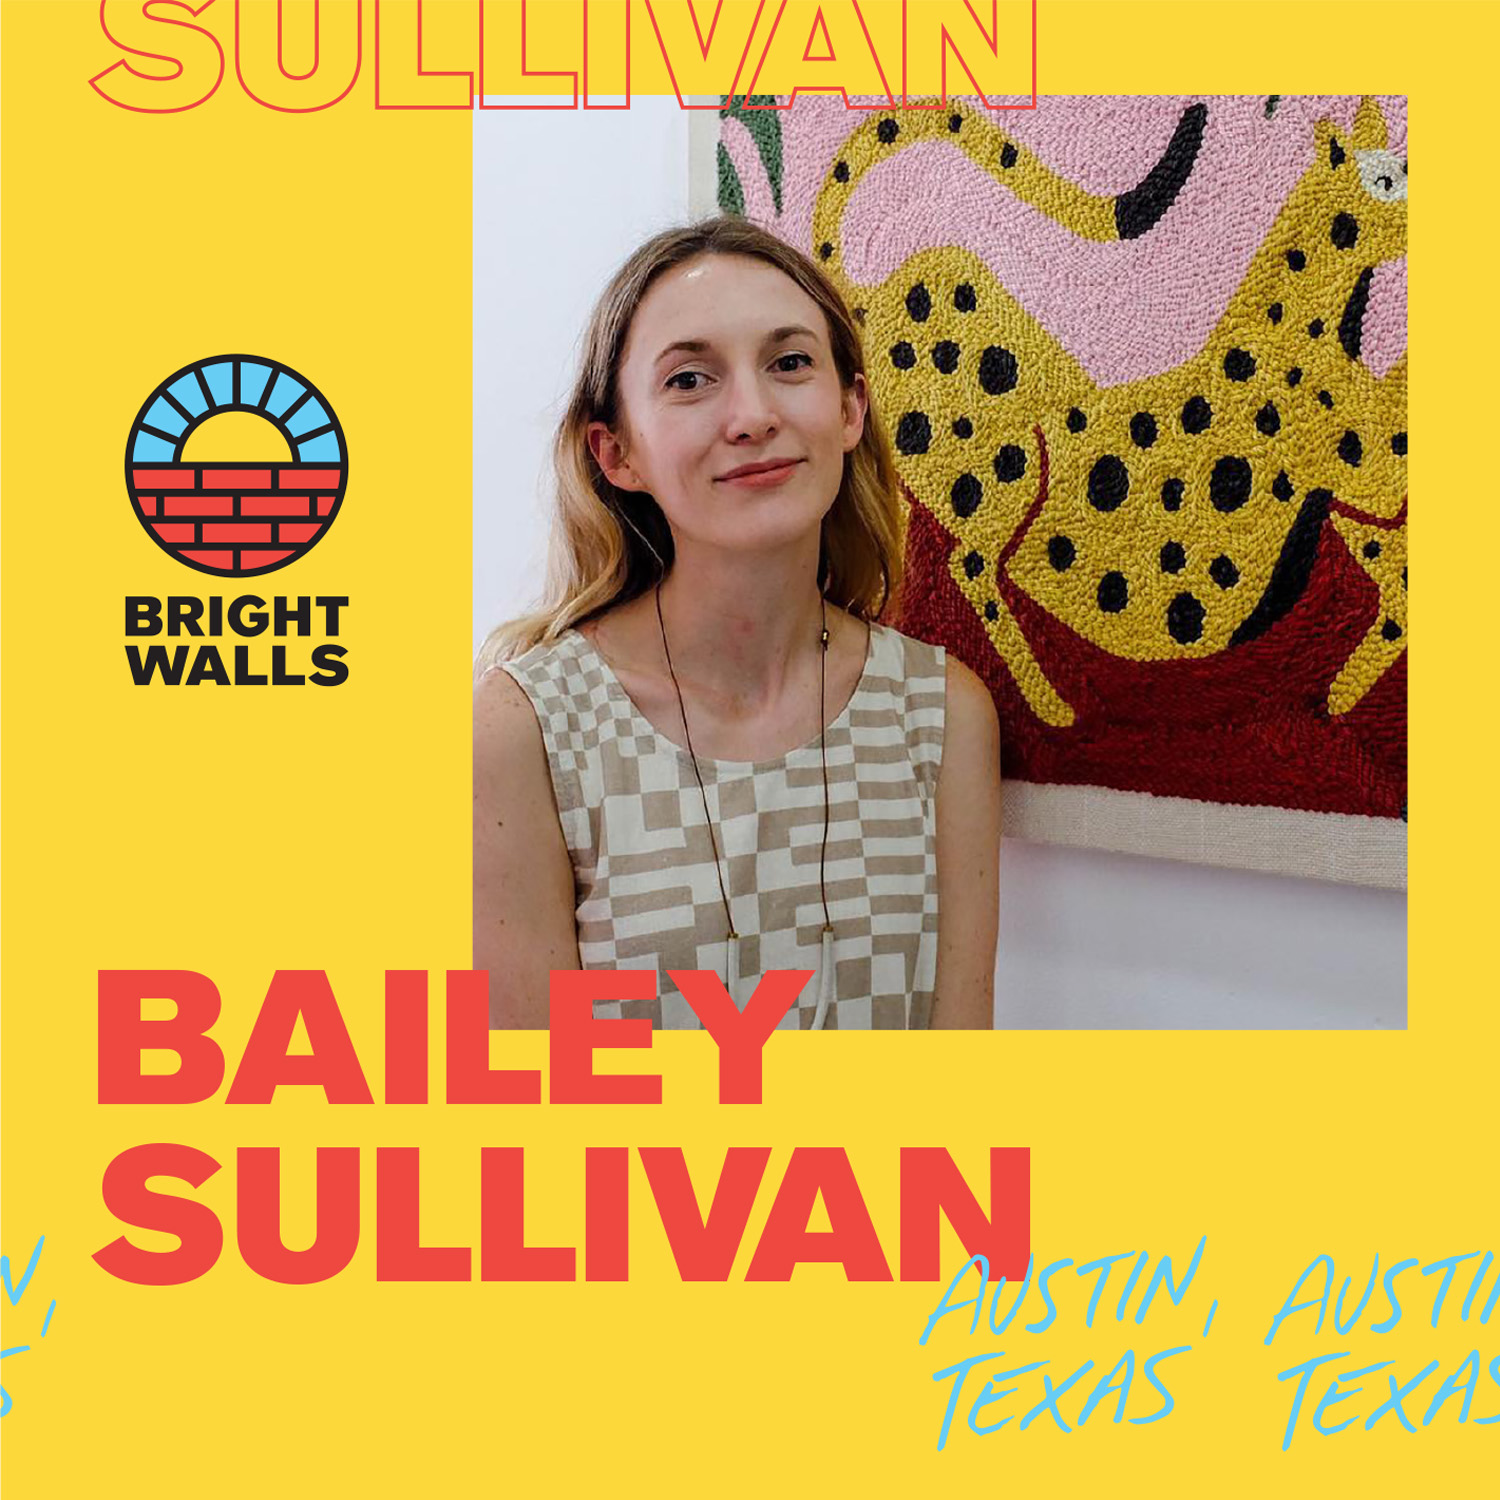 Bailey SullivanAustin, Texas - Bailey is a Texas-raised artist based in Brooklyn, New York. Her work re-interprets the ordinary through simplistic shapes, symmetry and bright colors.Inspired by nature, her illustrations often feature florals and animals. She has worked with a variety of clients including Facebook, Amazon, Planned Parenthood, JetBlue, Lowe's, Tesco and Refinery29.She is now experimenting with translating her work to textiles and other tangible mediums.